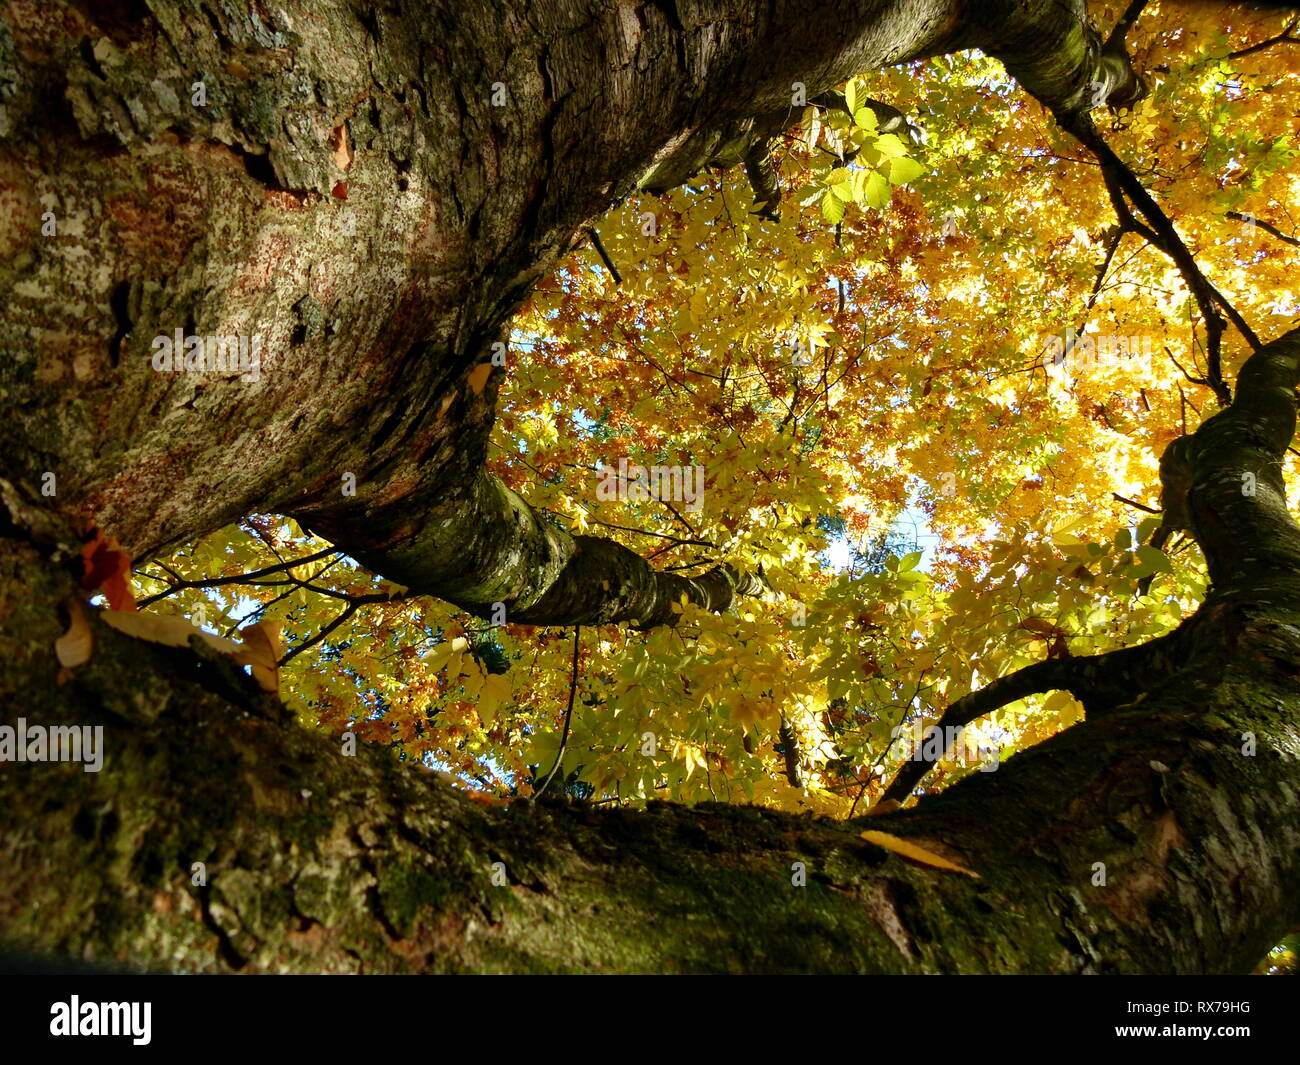 Japanese zelkoven tree with yellow autumn leaves in steep perspective - Stock Image